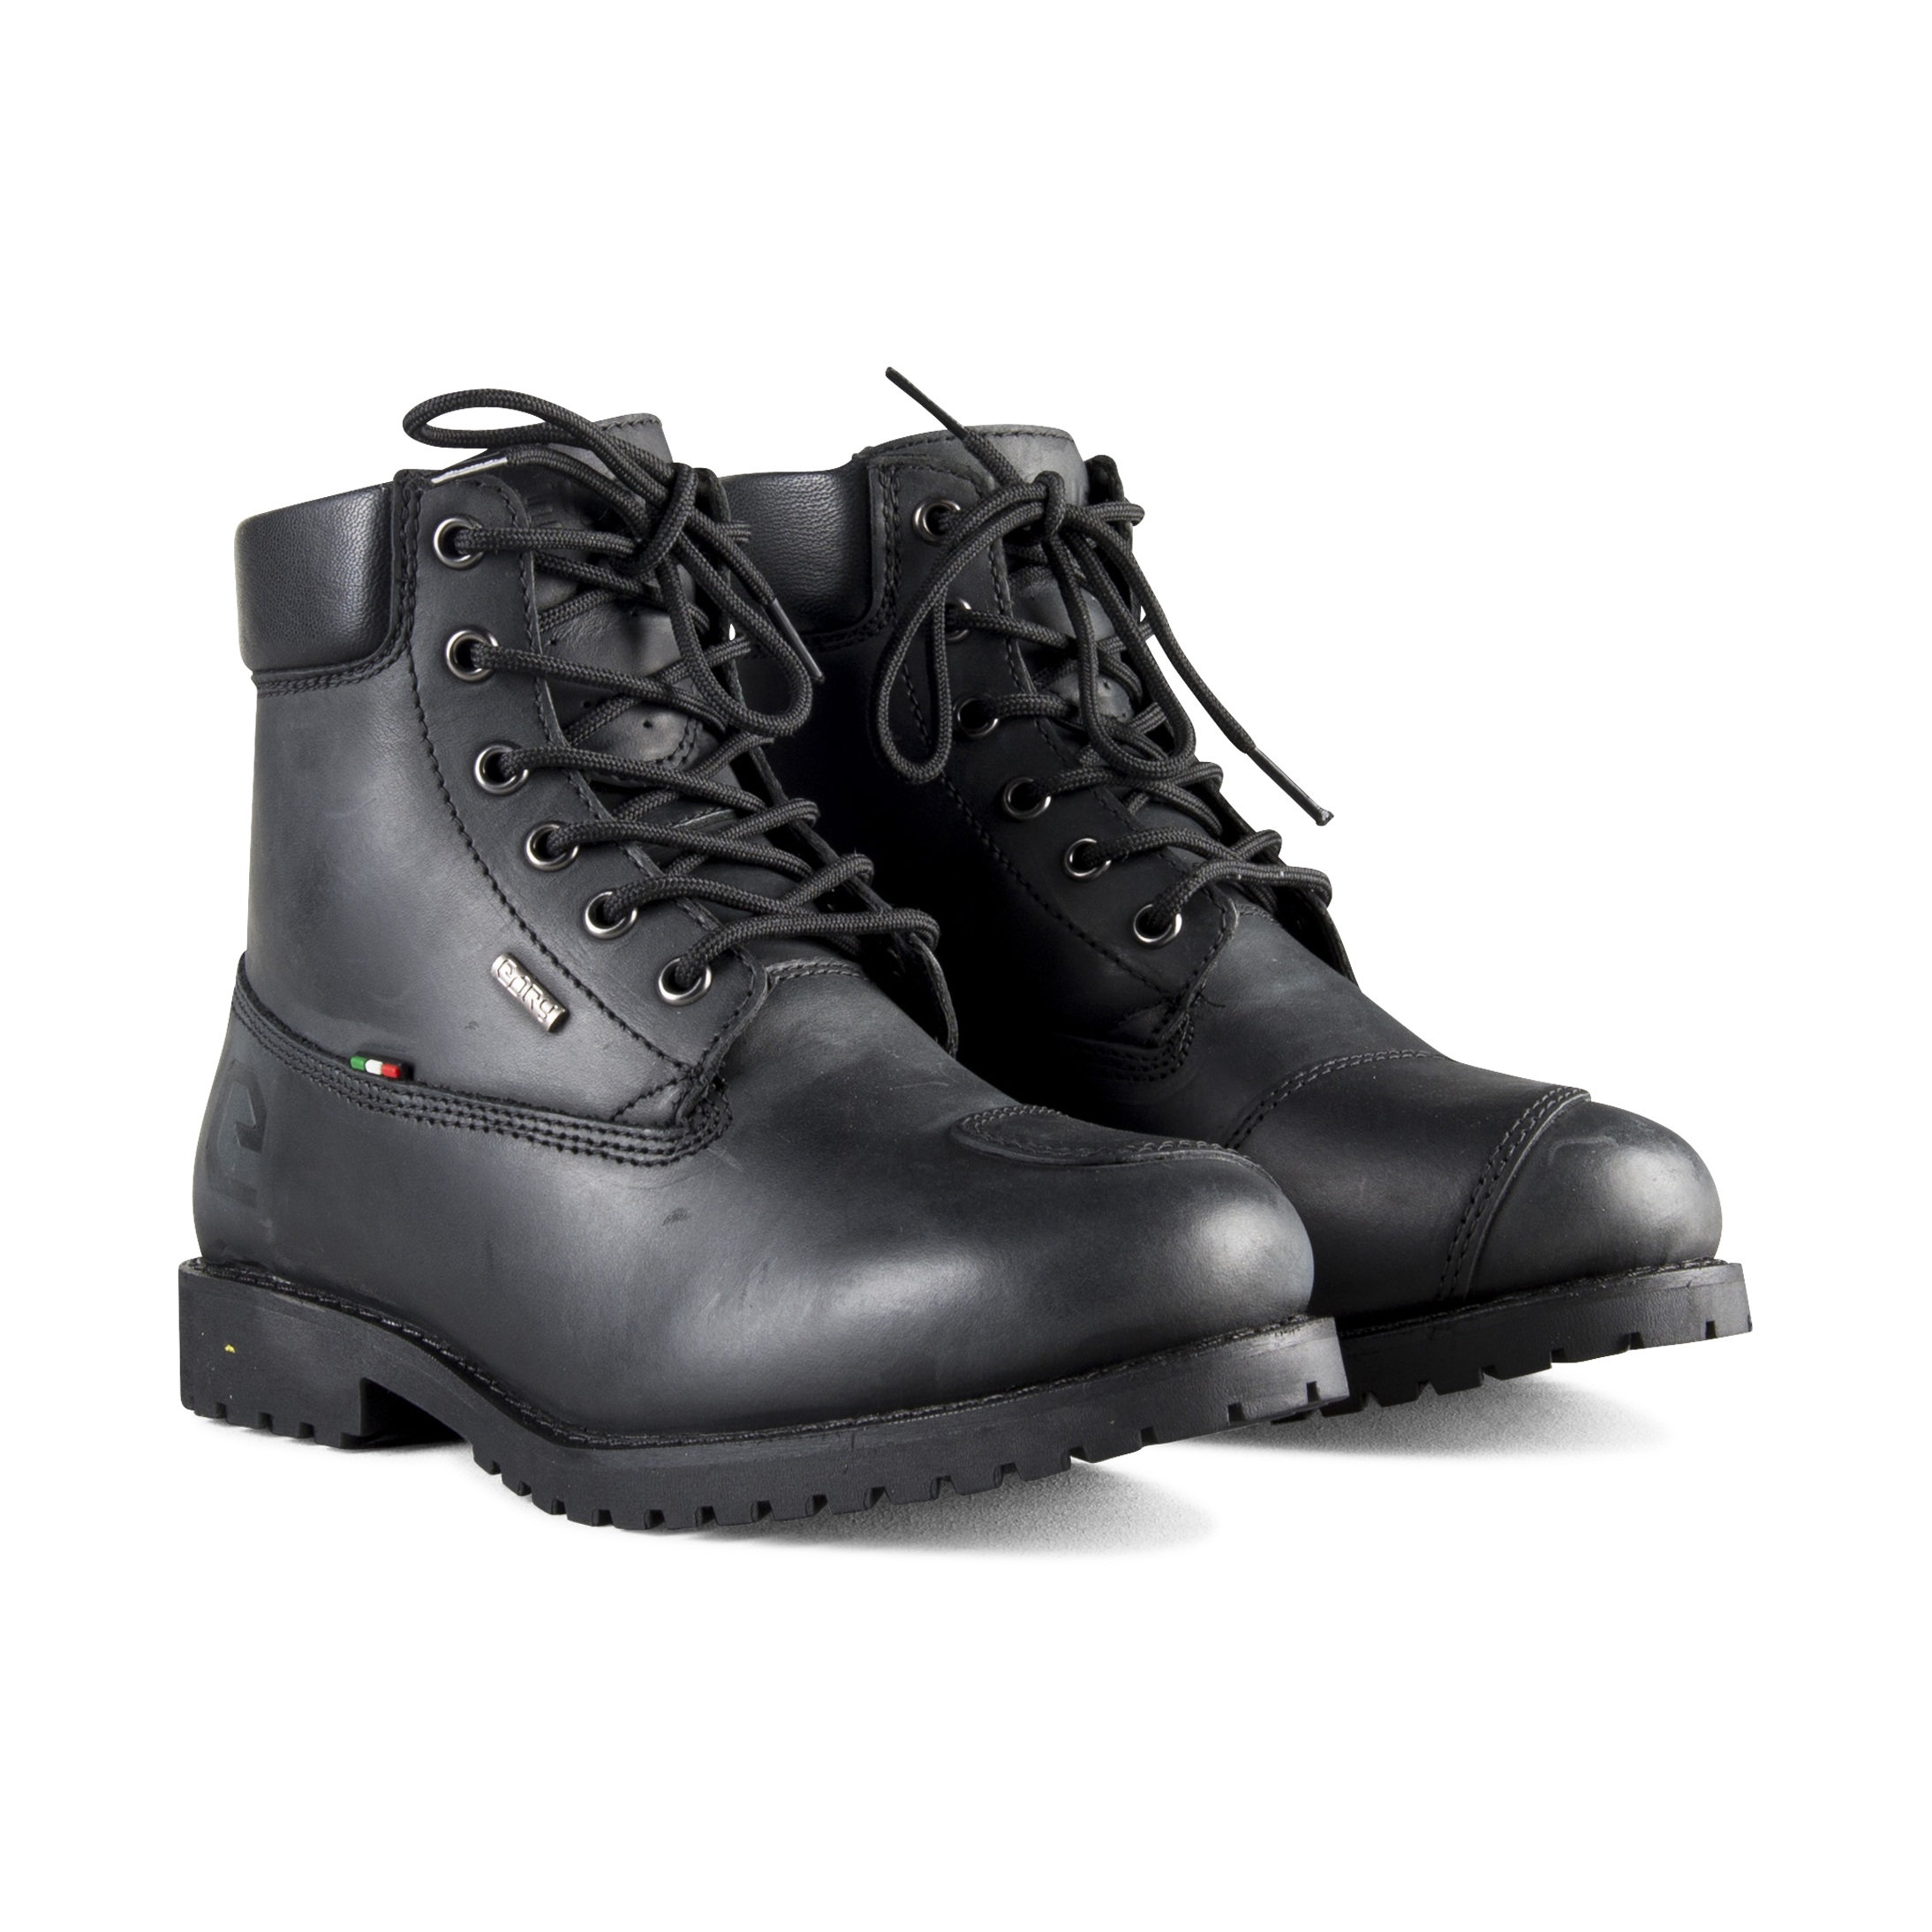 Eleveit All Ride Shoes Black - Now 54